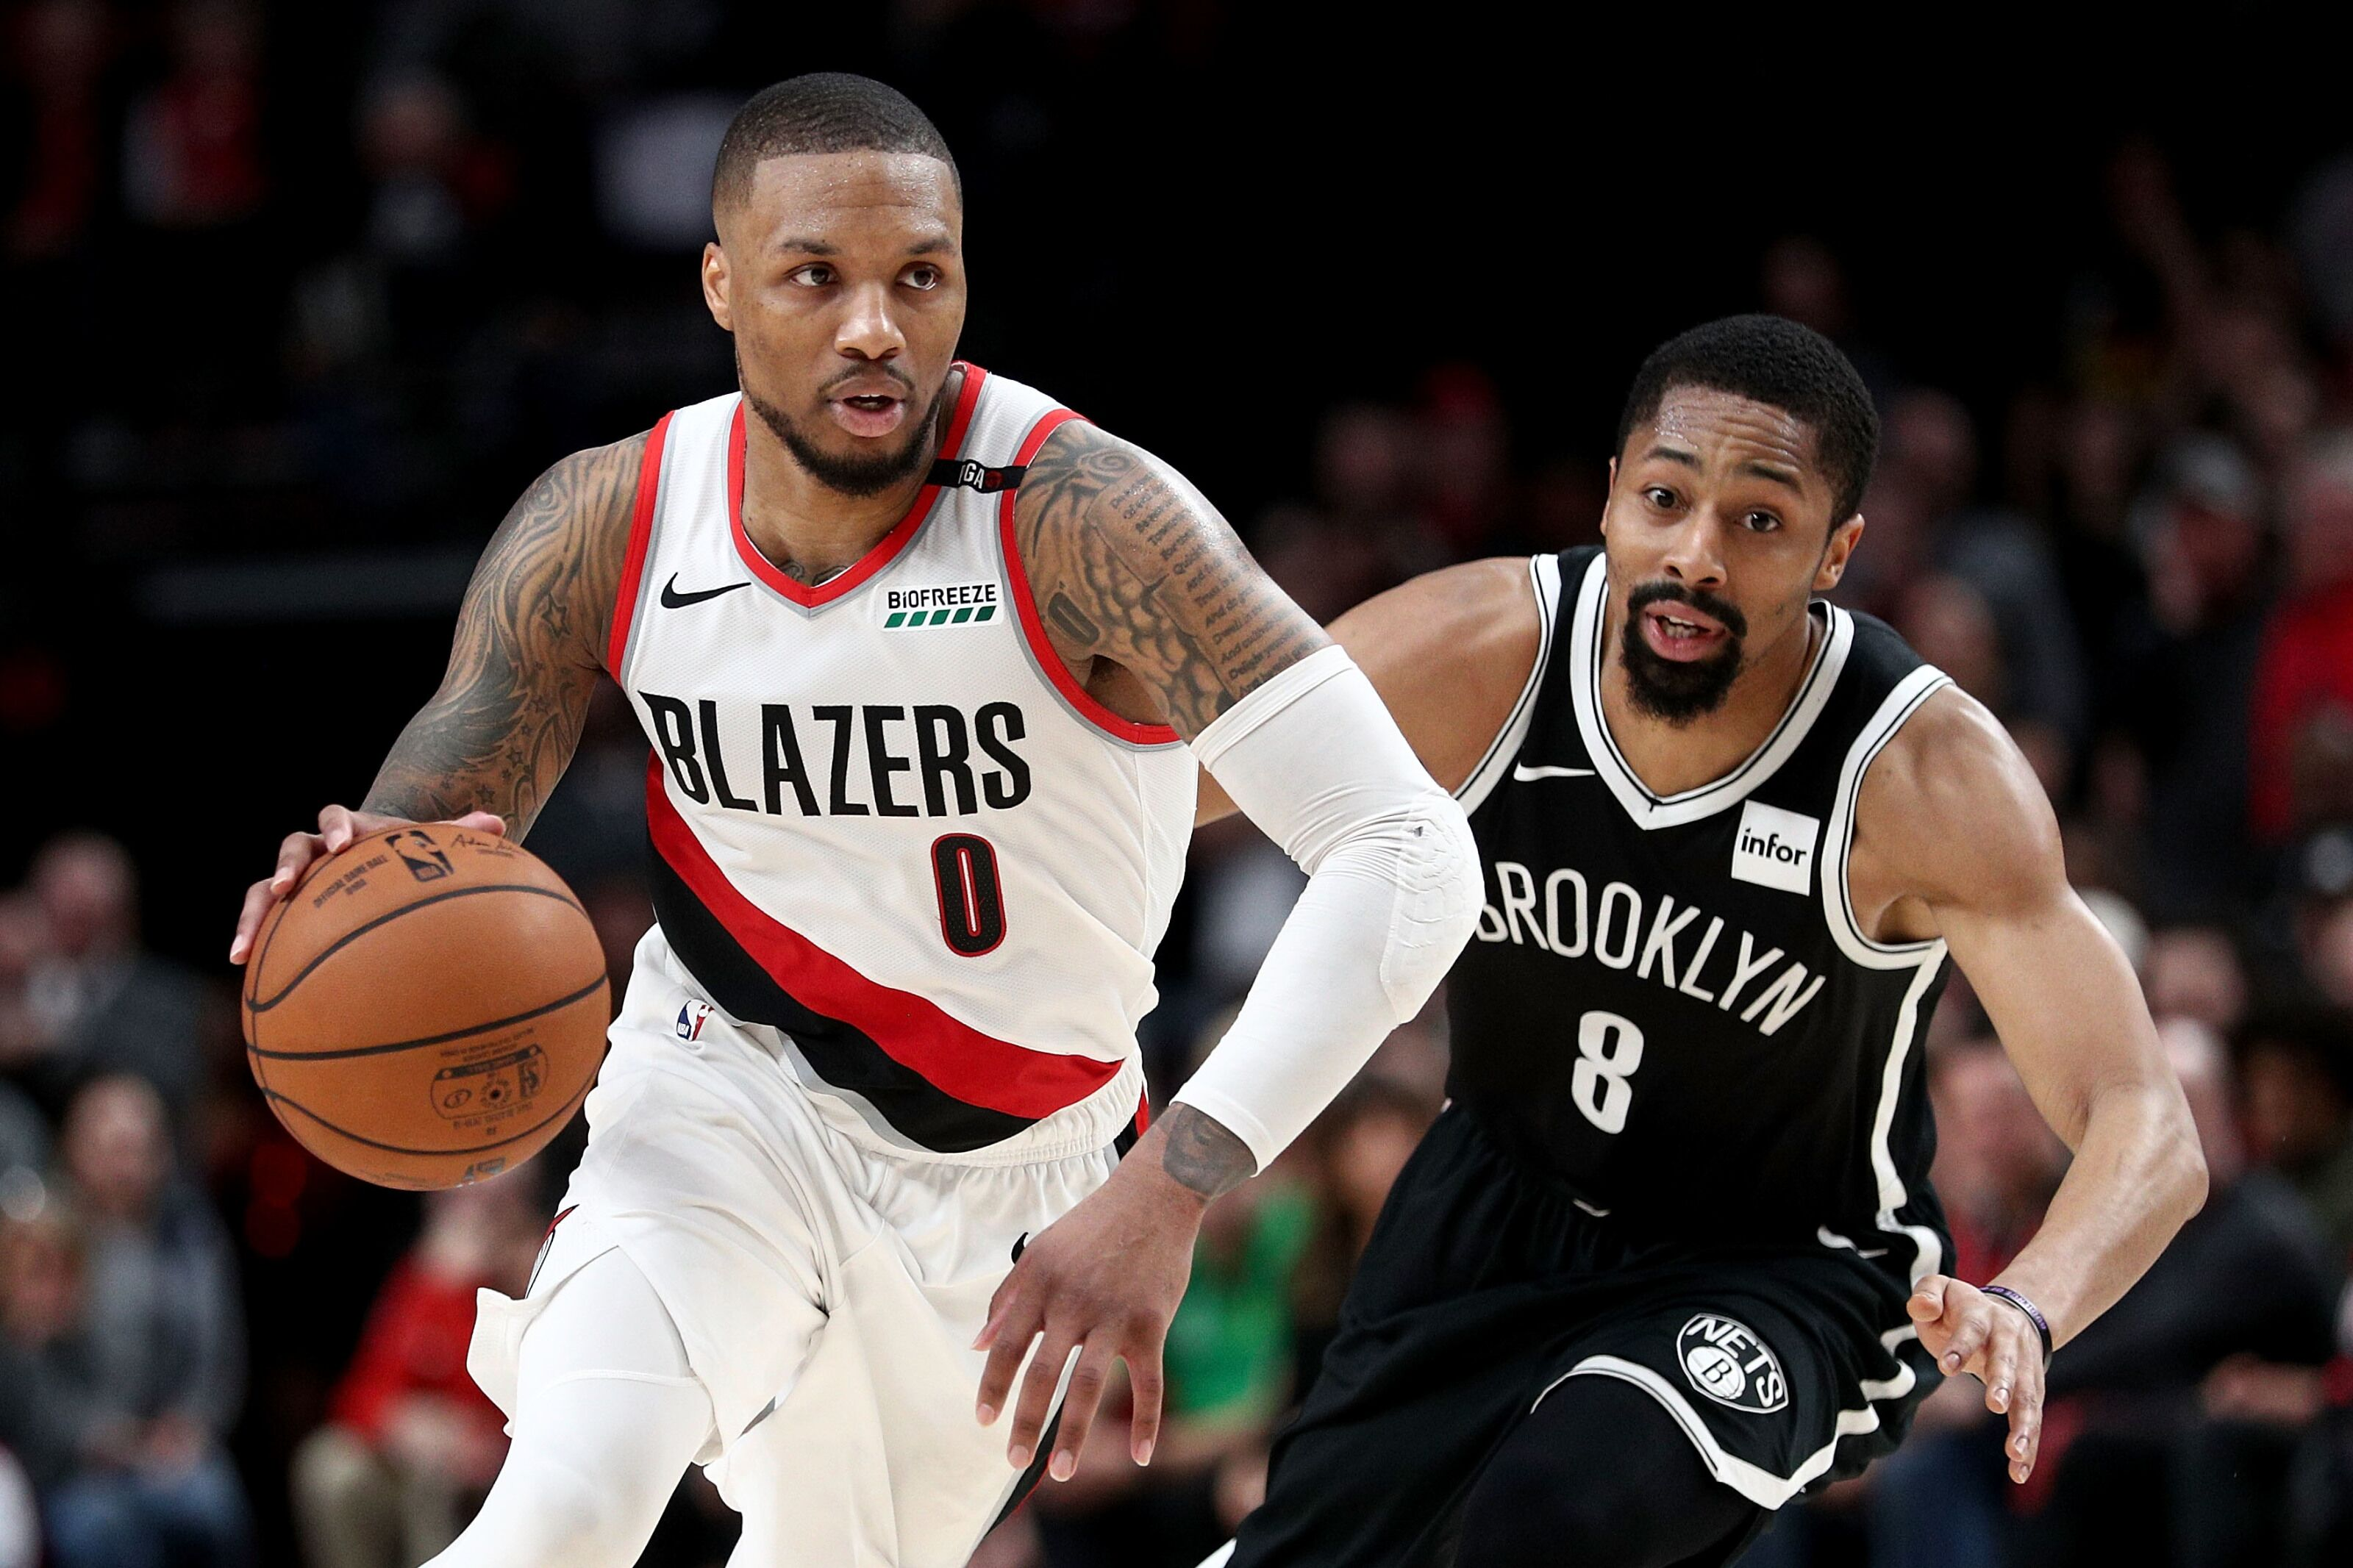 Trail Blazers vs Nets: Odds, updates, game predictions